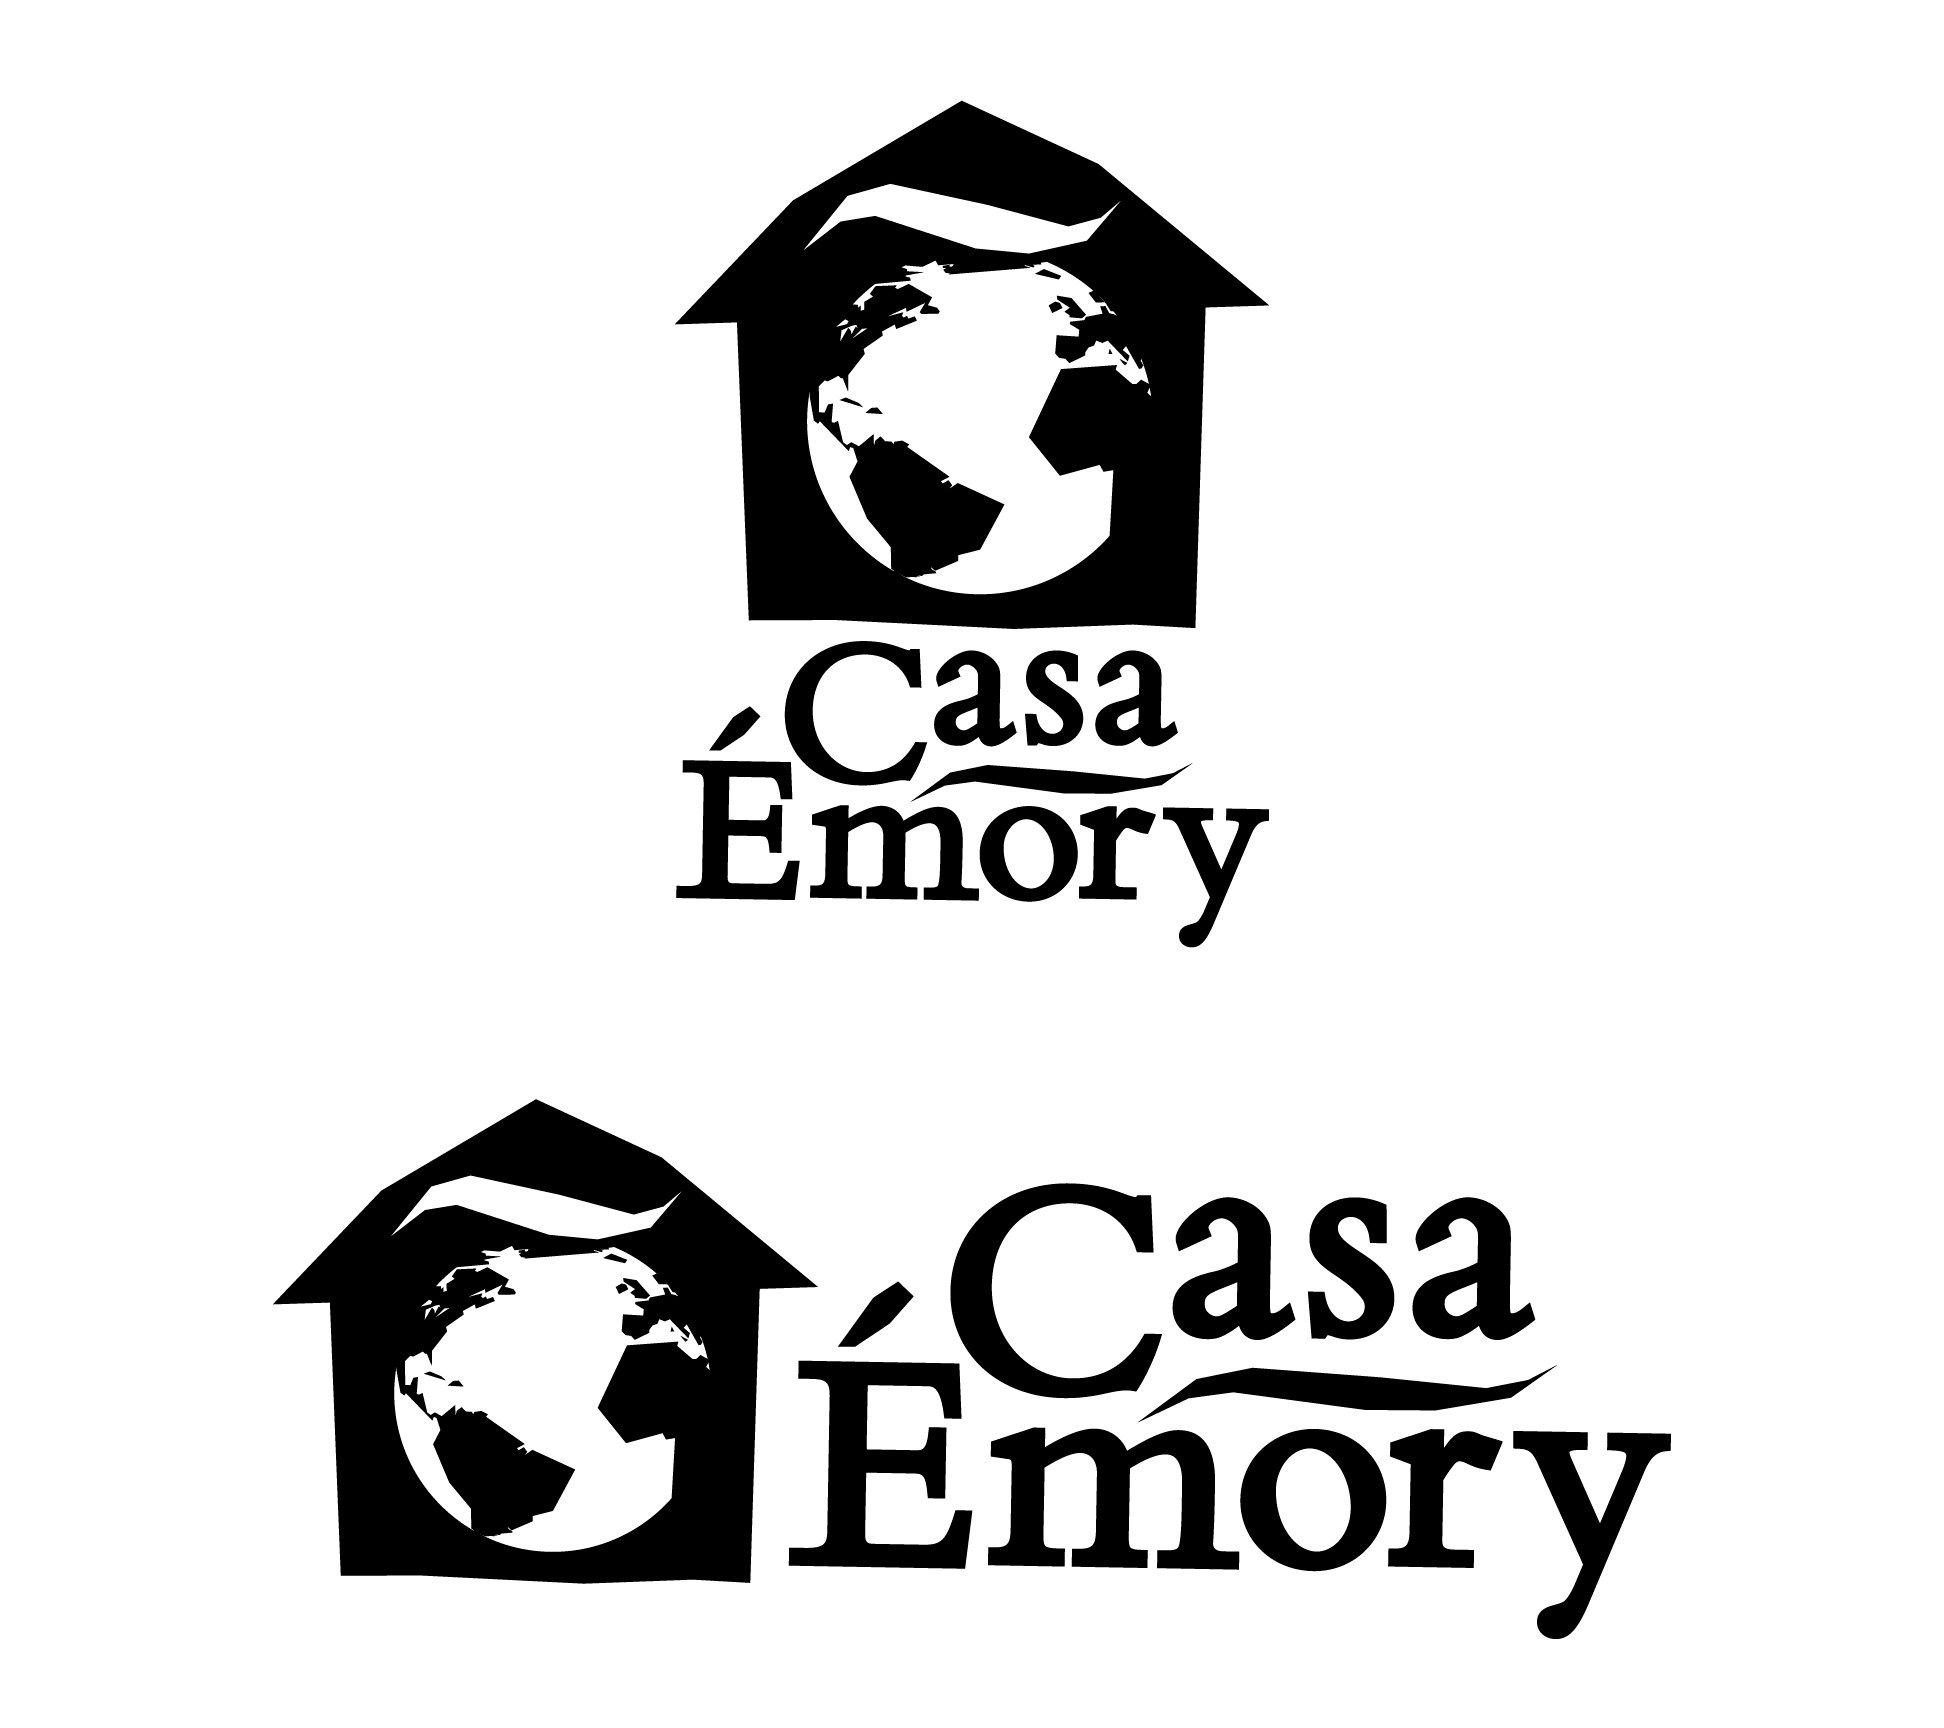 emory-CasaEmory_BW.png